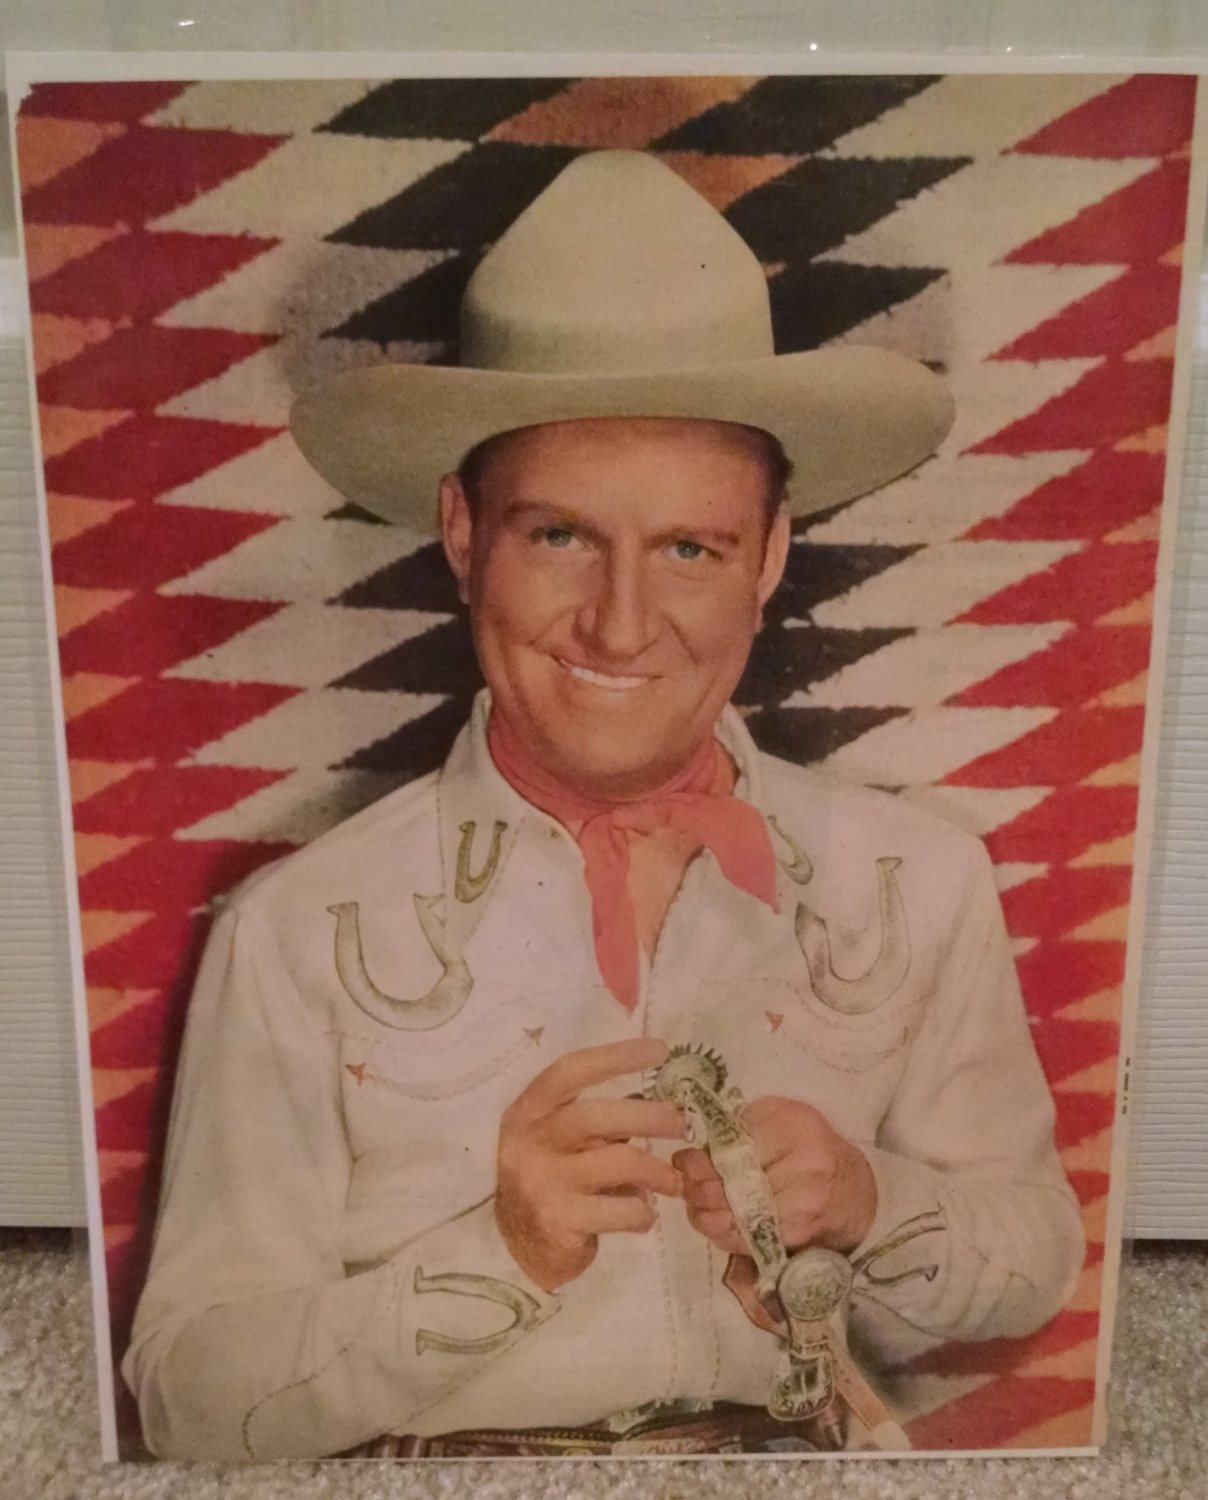 GENE AUTRY 1949 Magazine Picture in Classic Cowboy Pose